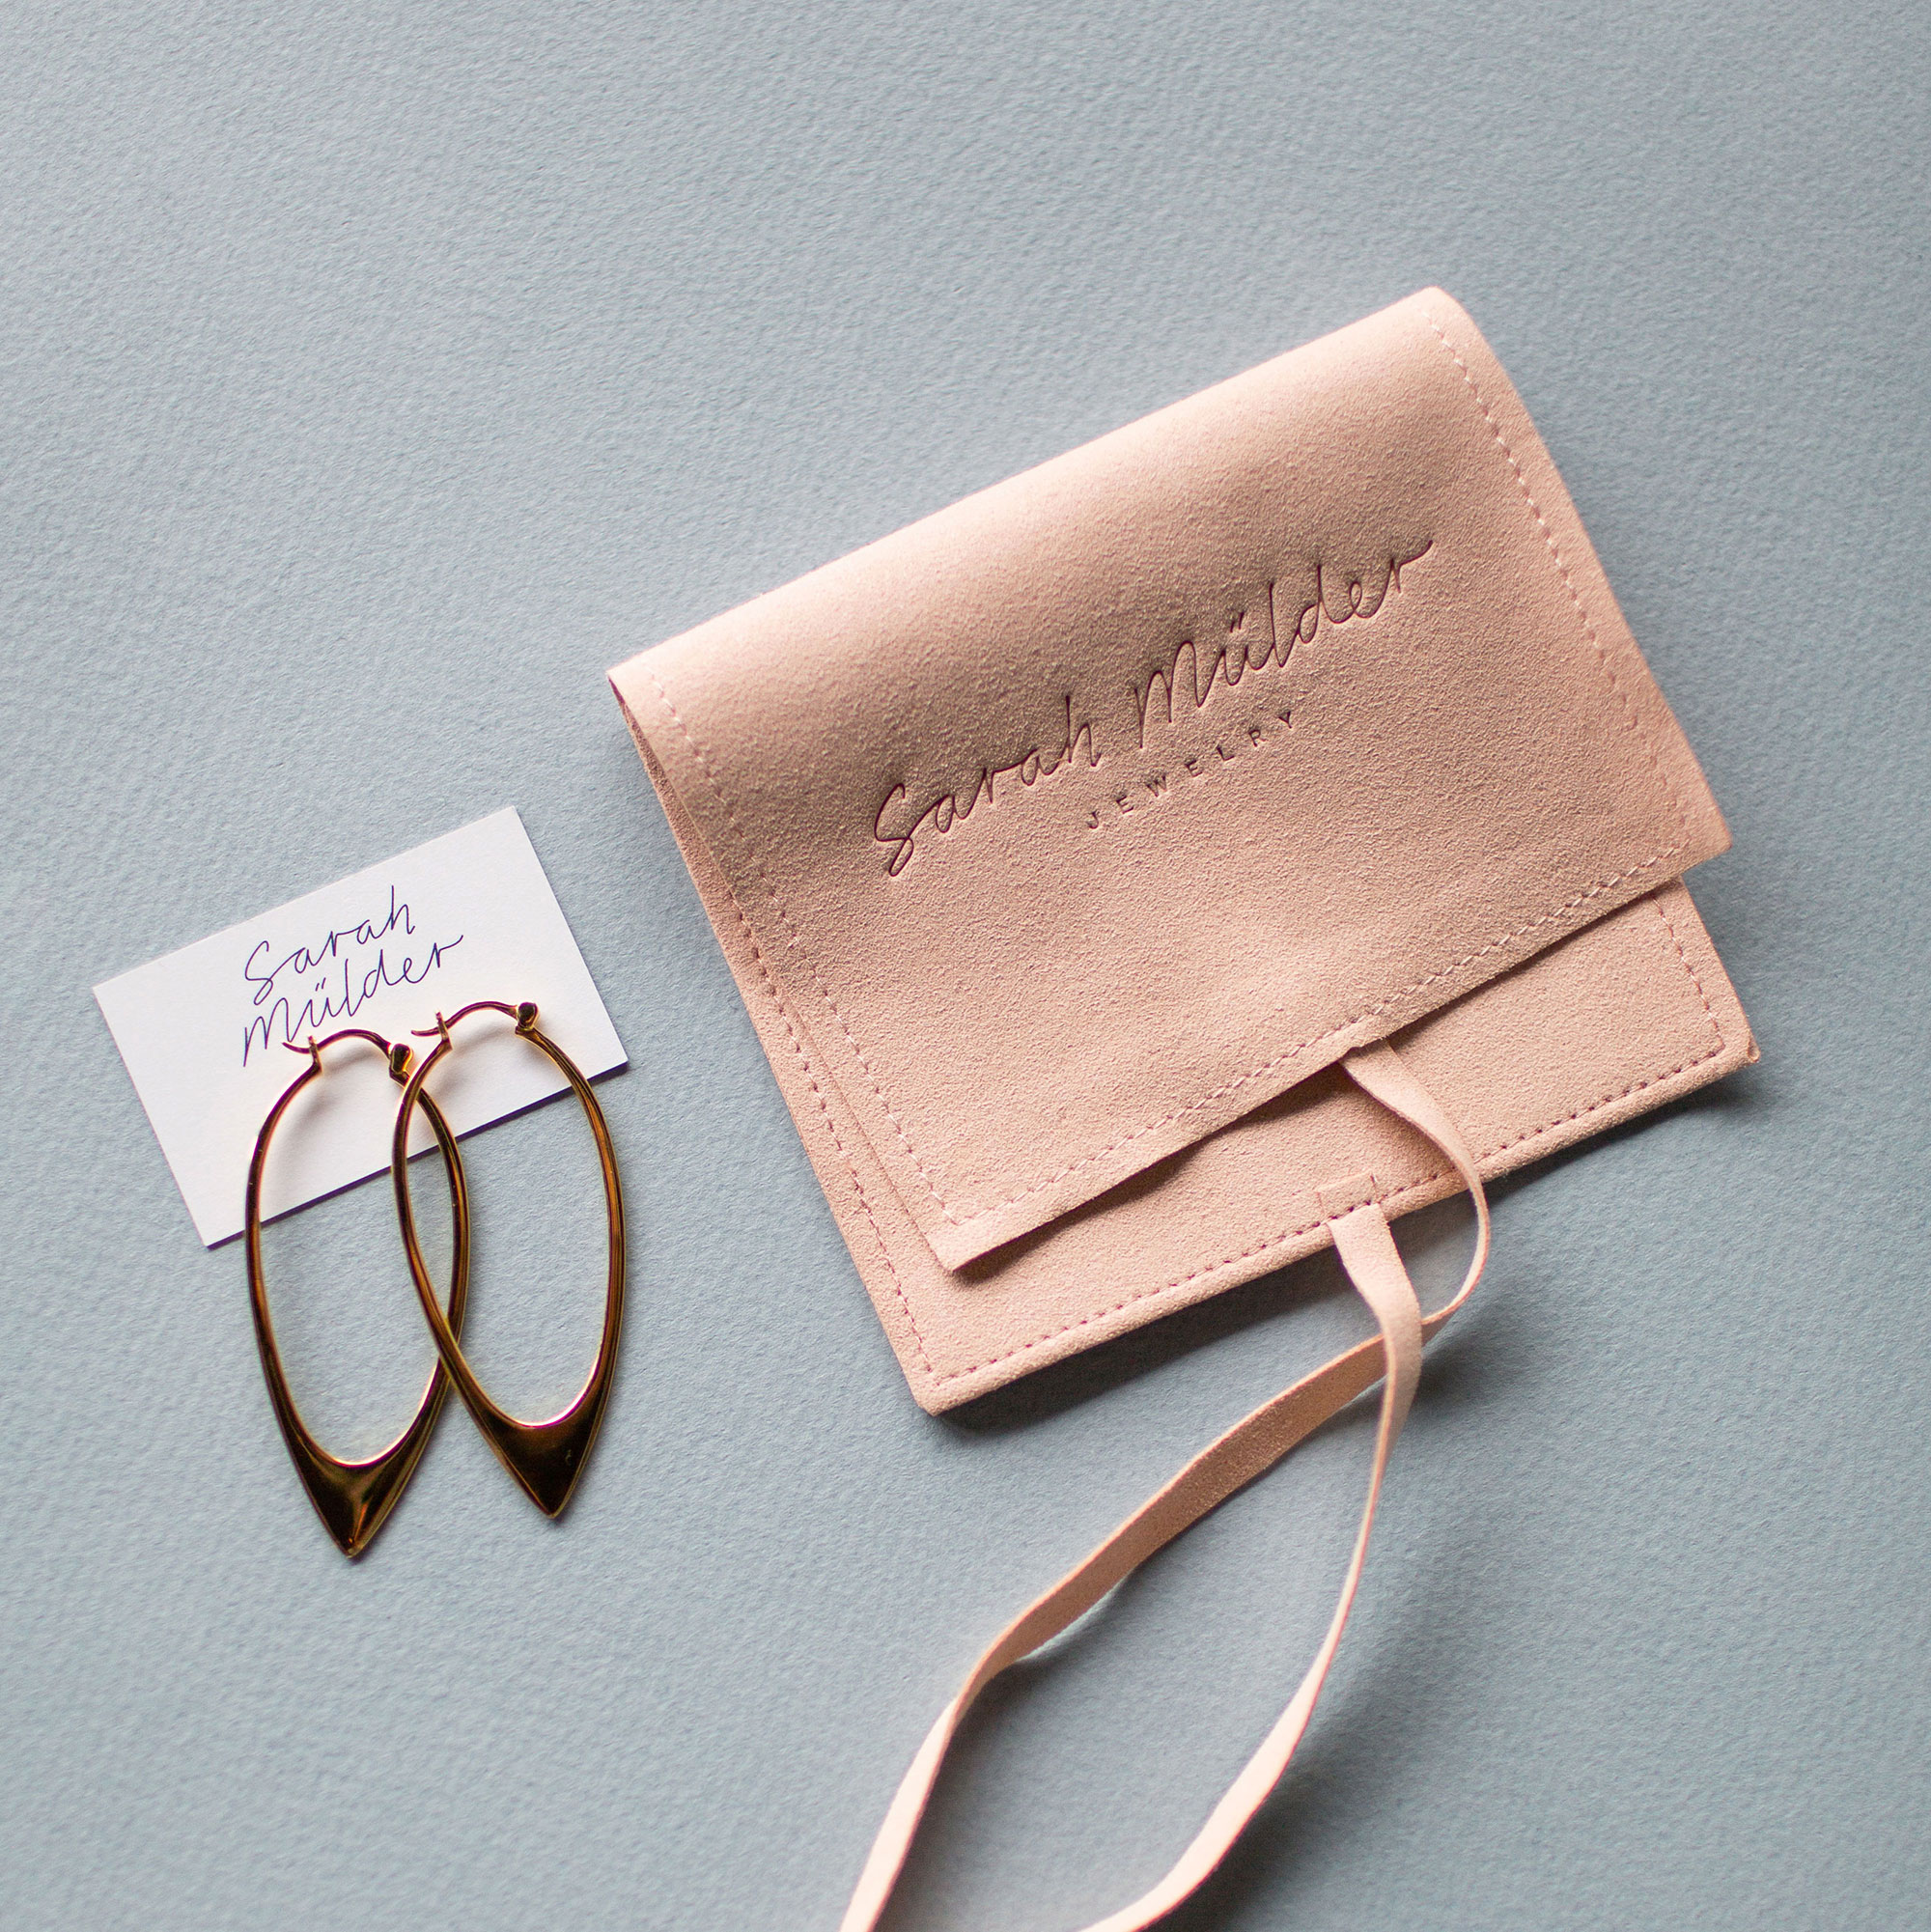 Sarah Mülder Vancouver Jewelry custom branded packaging pieces | www.alicia-carvalho.com